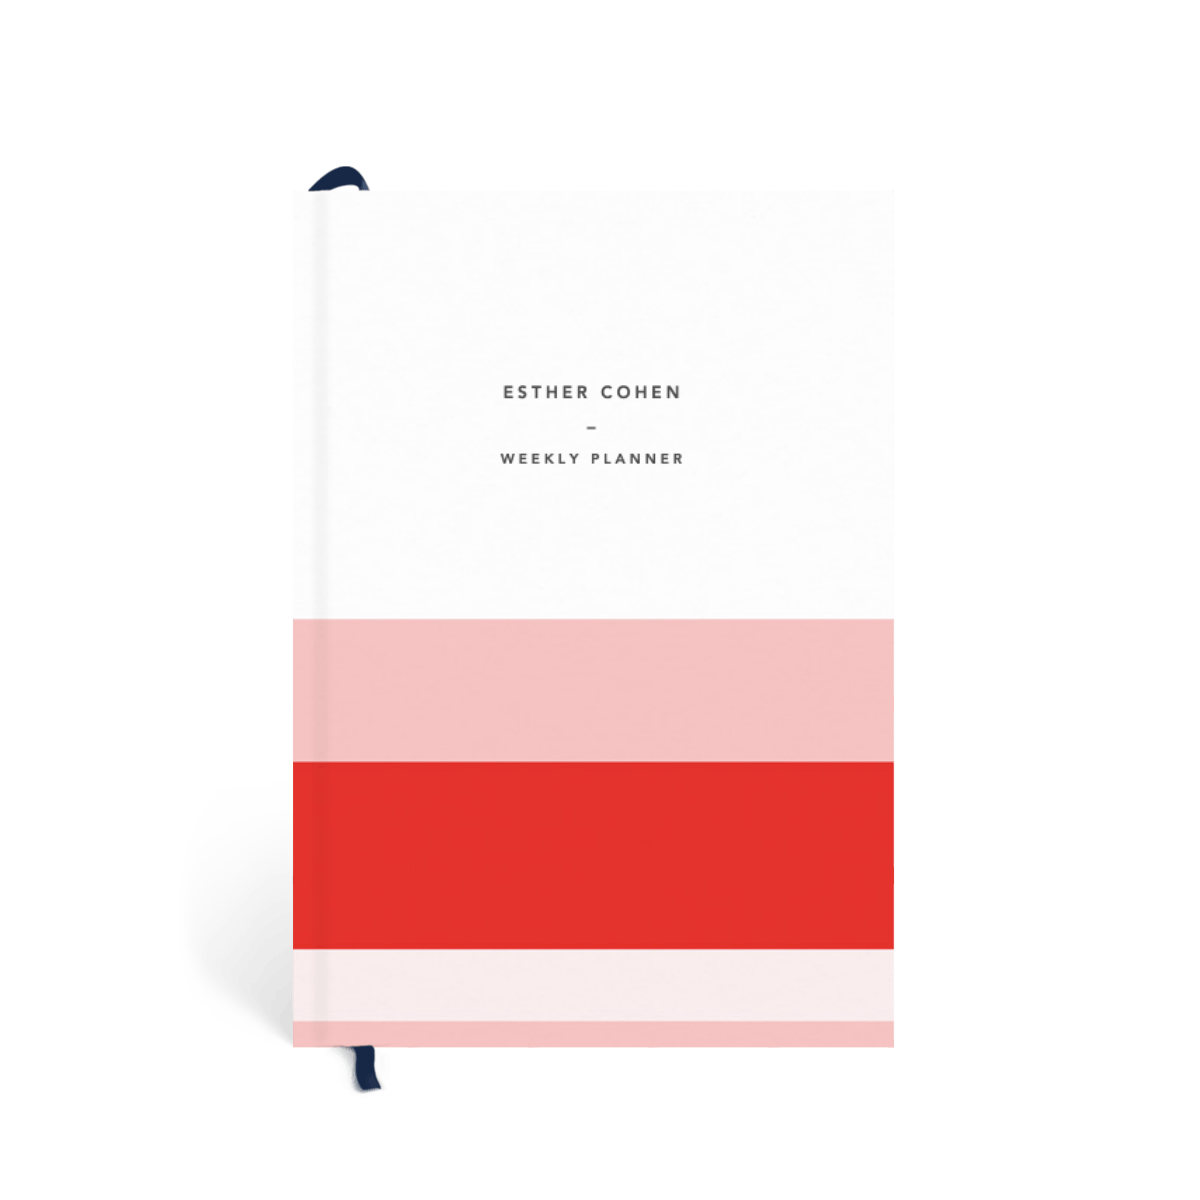 Https%3a%2f%2fwww.papier.com%2fproduct image%2f67263%2f36%2fstriped colourblock pink red 15947 front 1551095557.png?ixlib=rb 1.1